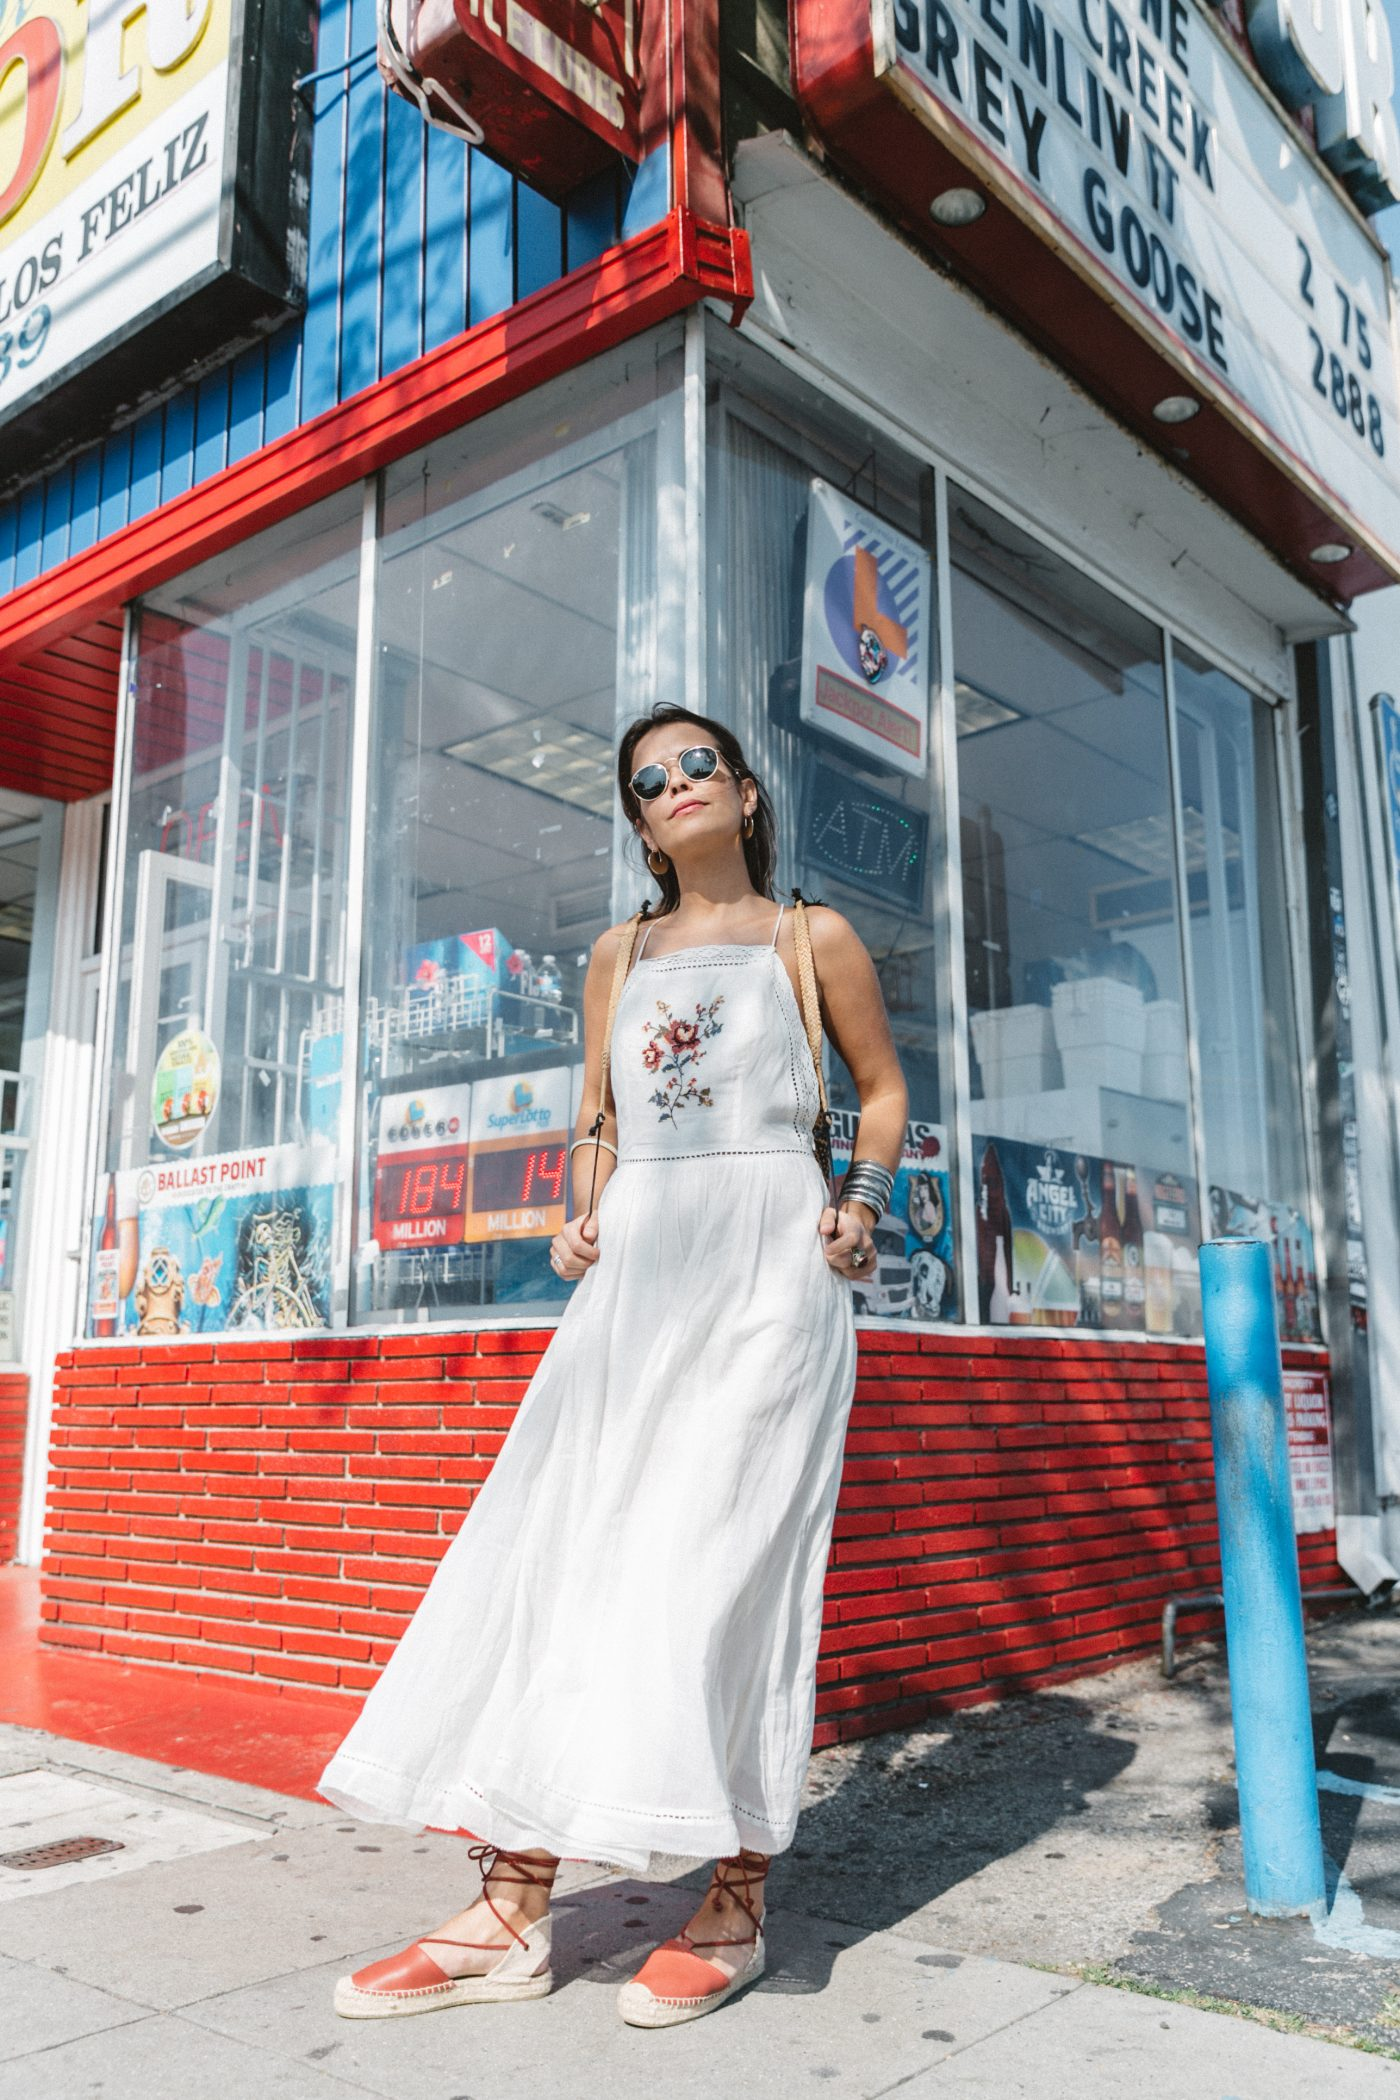 White_Dress-Boho-Soludos_Espadrilles-Backless_Dress-Urban_Outfitters-Los_Angeles-Outfit-Collage_Vintage-32